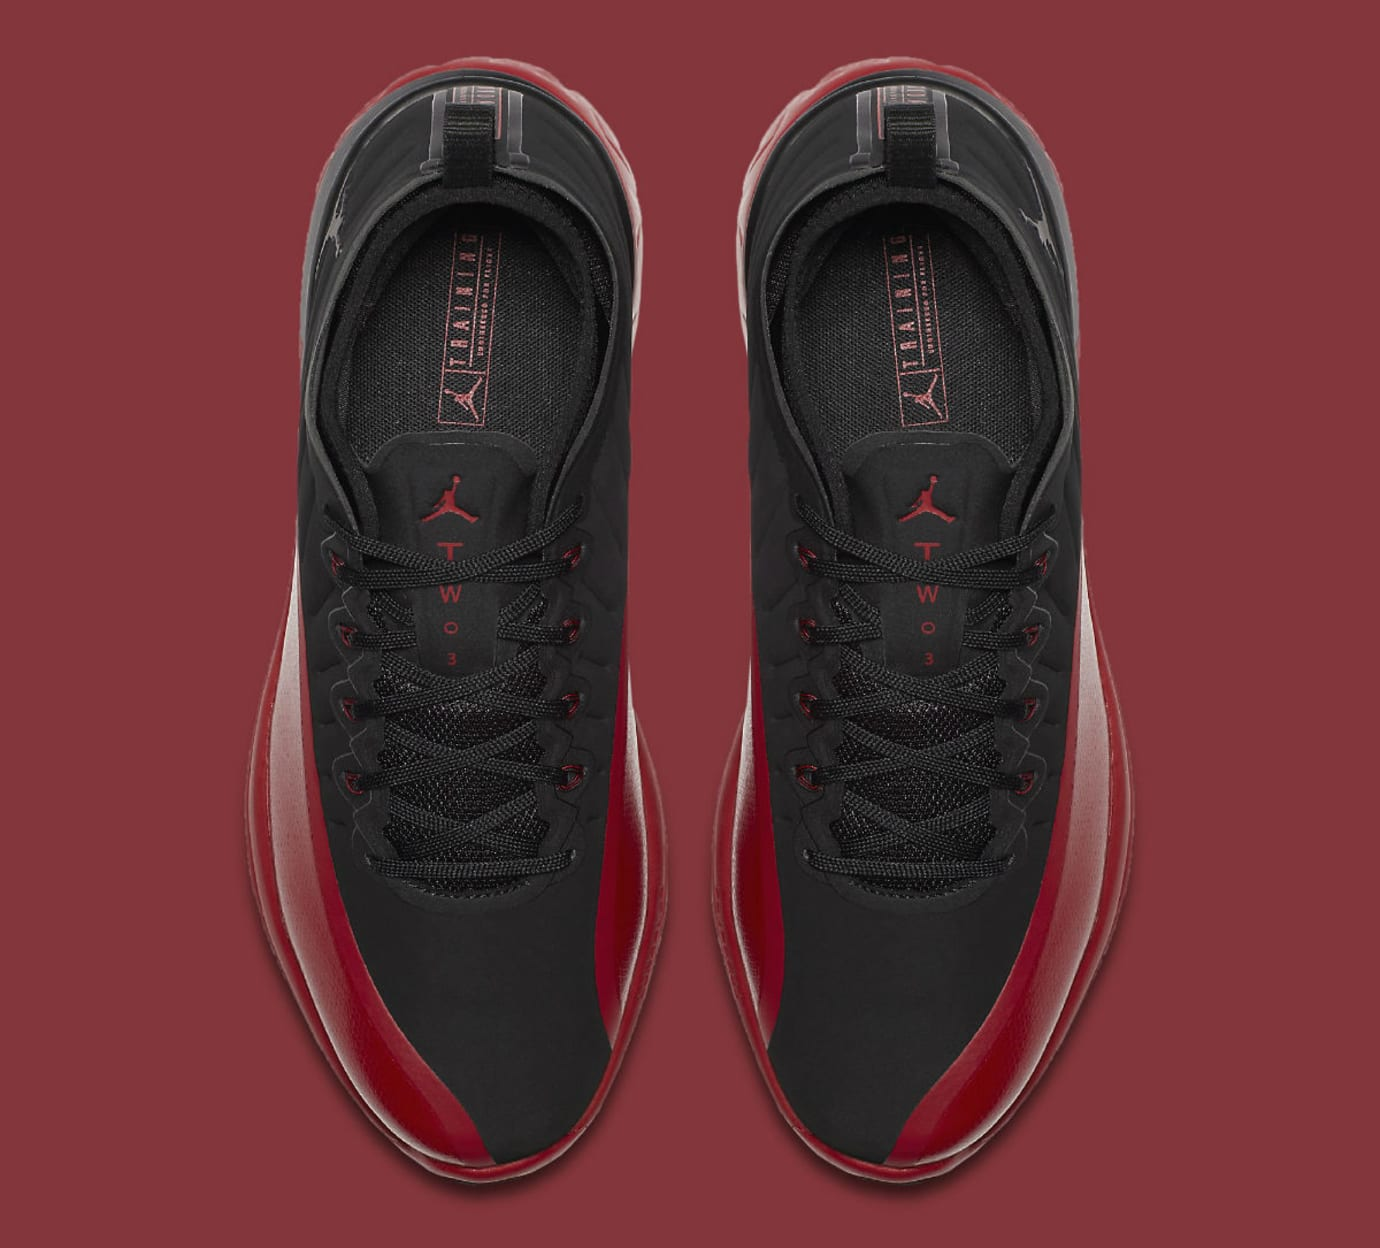 Jordan Trainer Prime Flu Game Release Date Top 881463-060